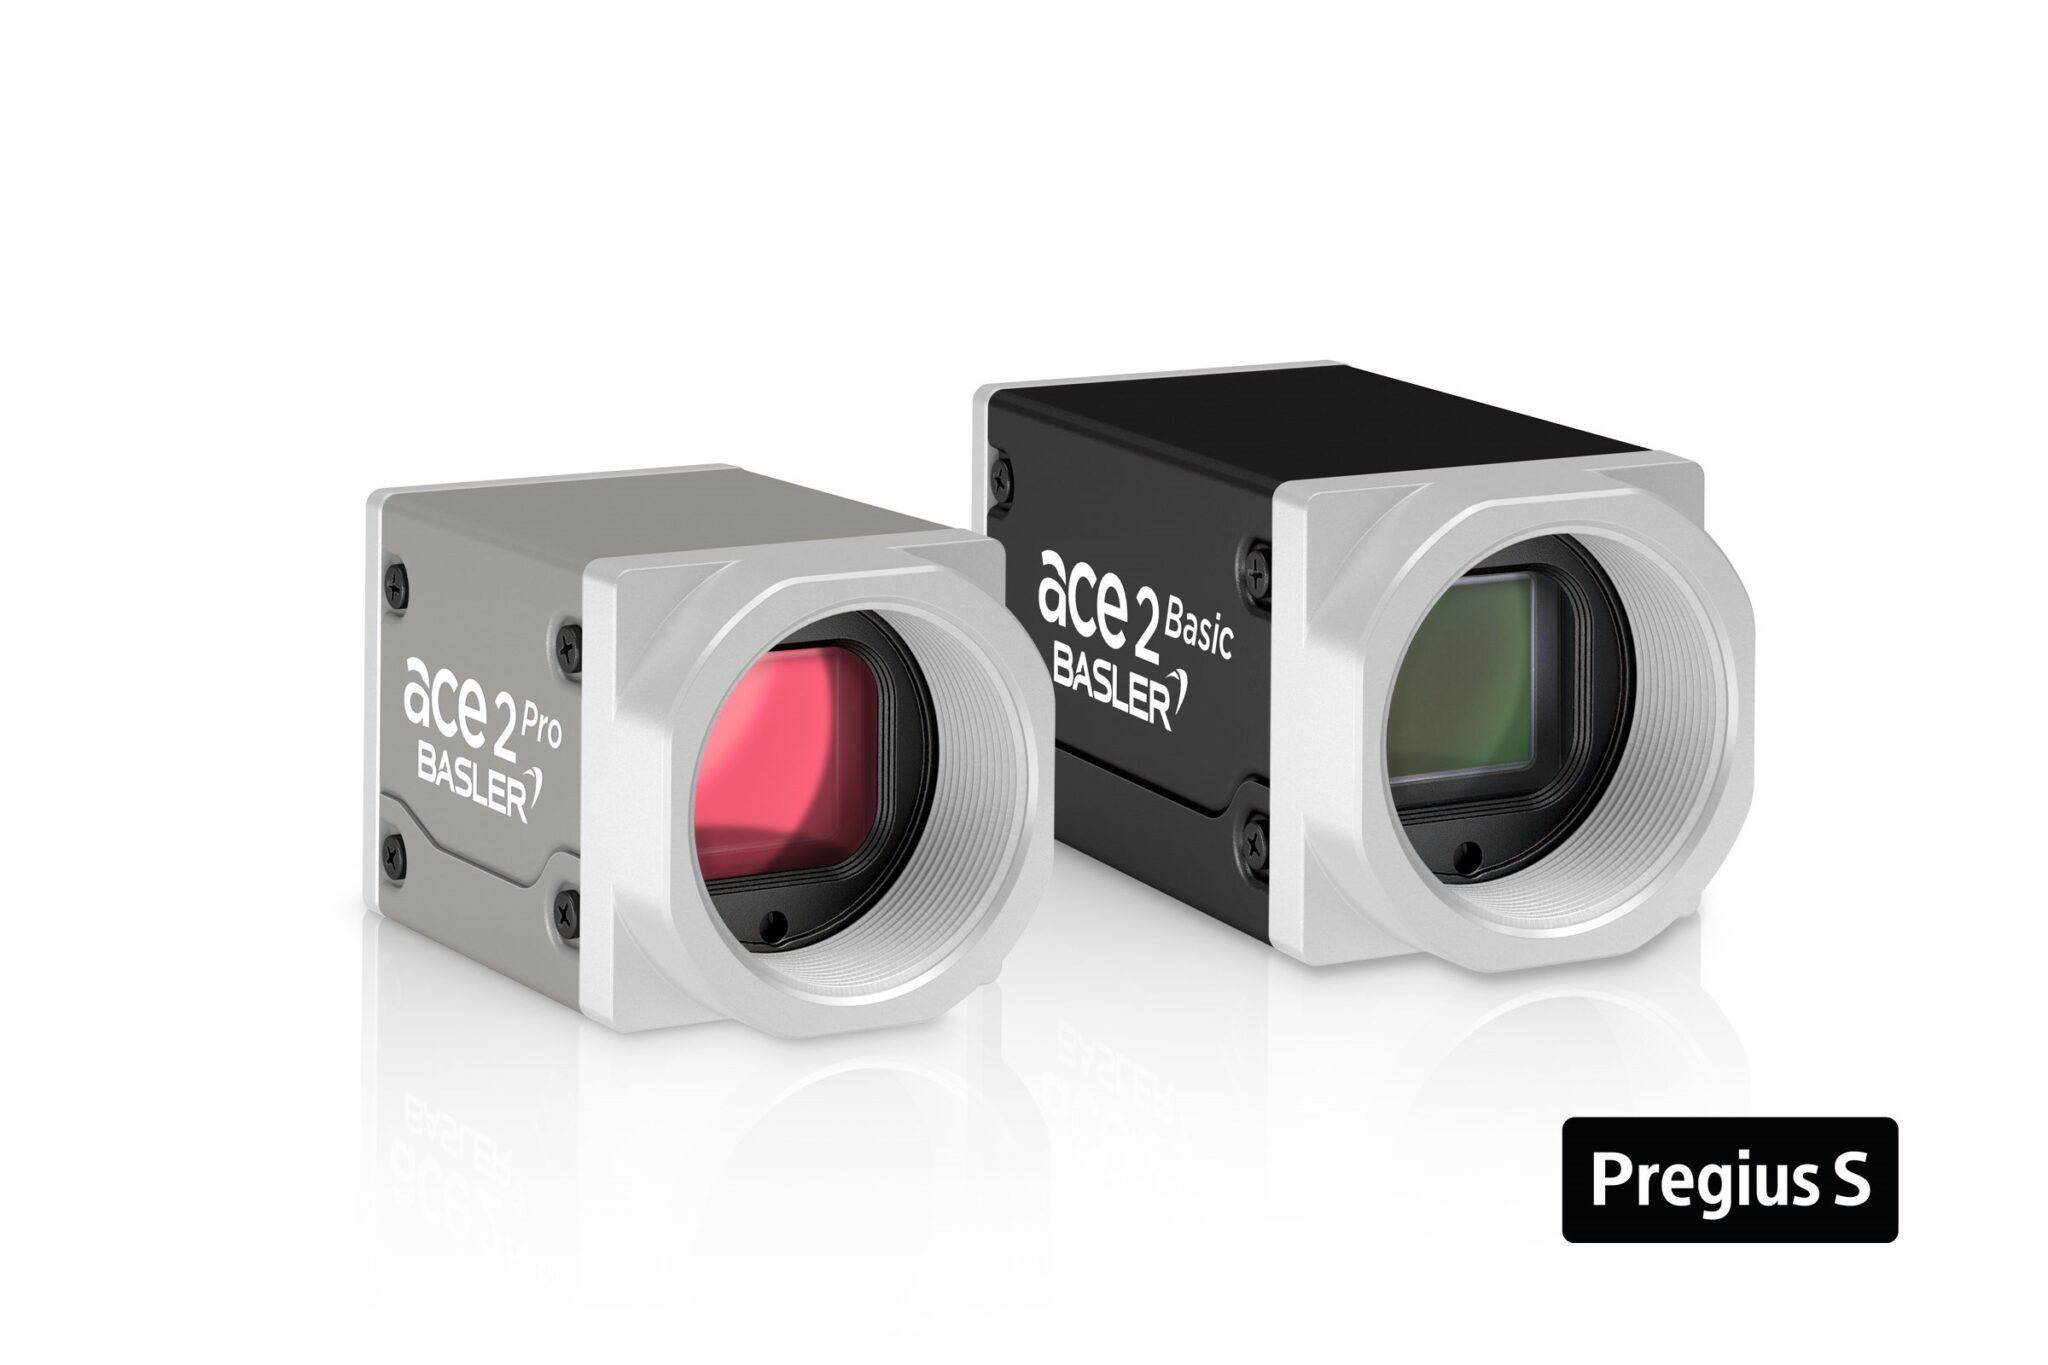 Read more about the article High Resolution and Low Price: New ace 2 Uses the Strengths of Sony's Pregius S Sensors